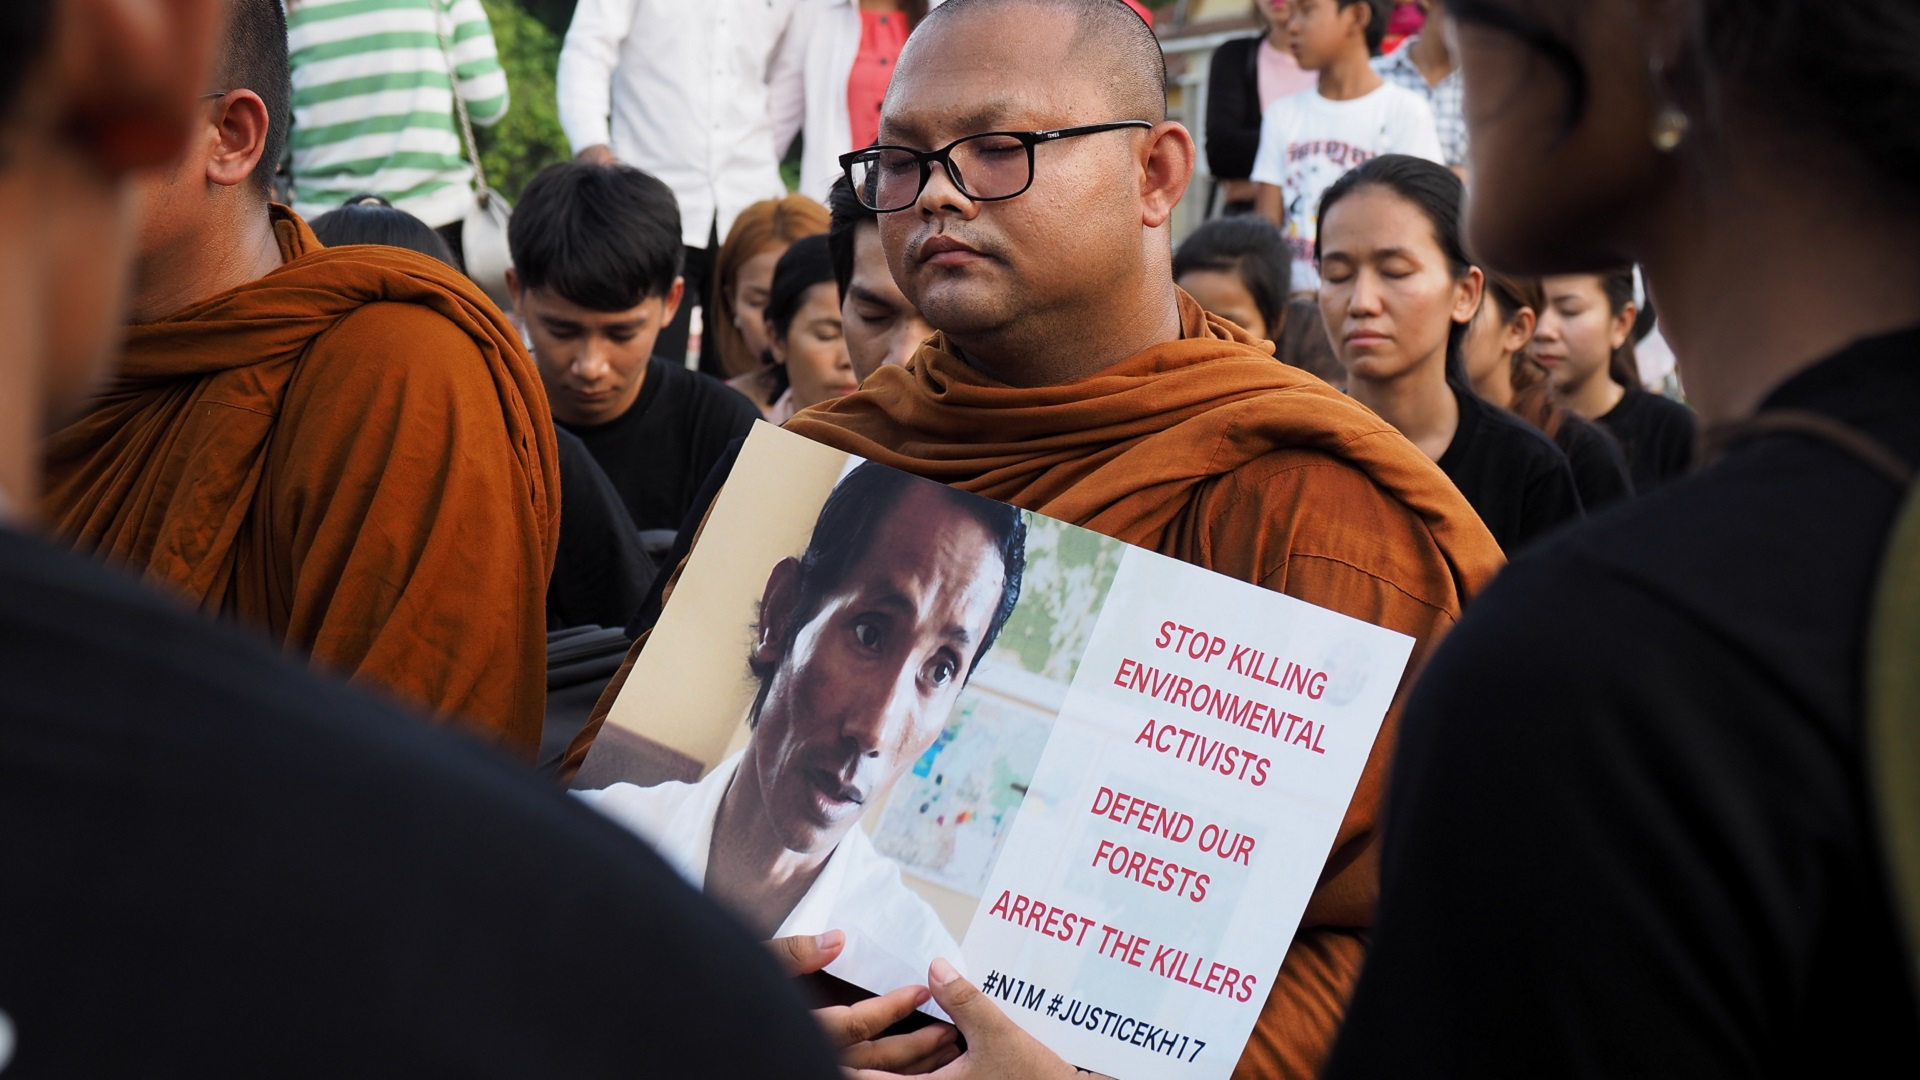 Environmental defender activist monk killing